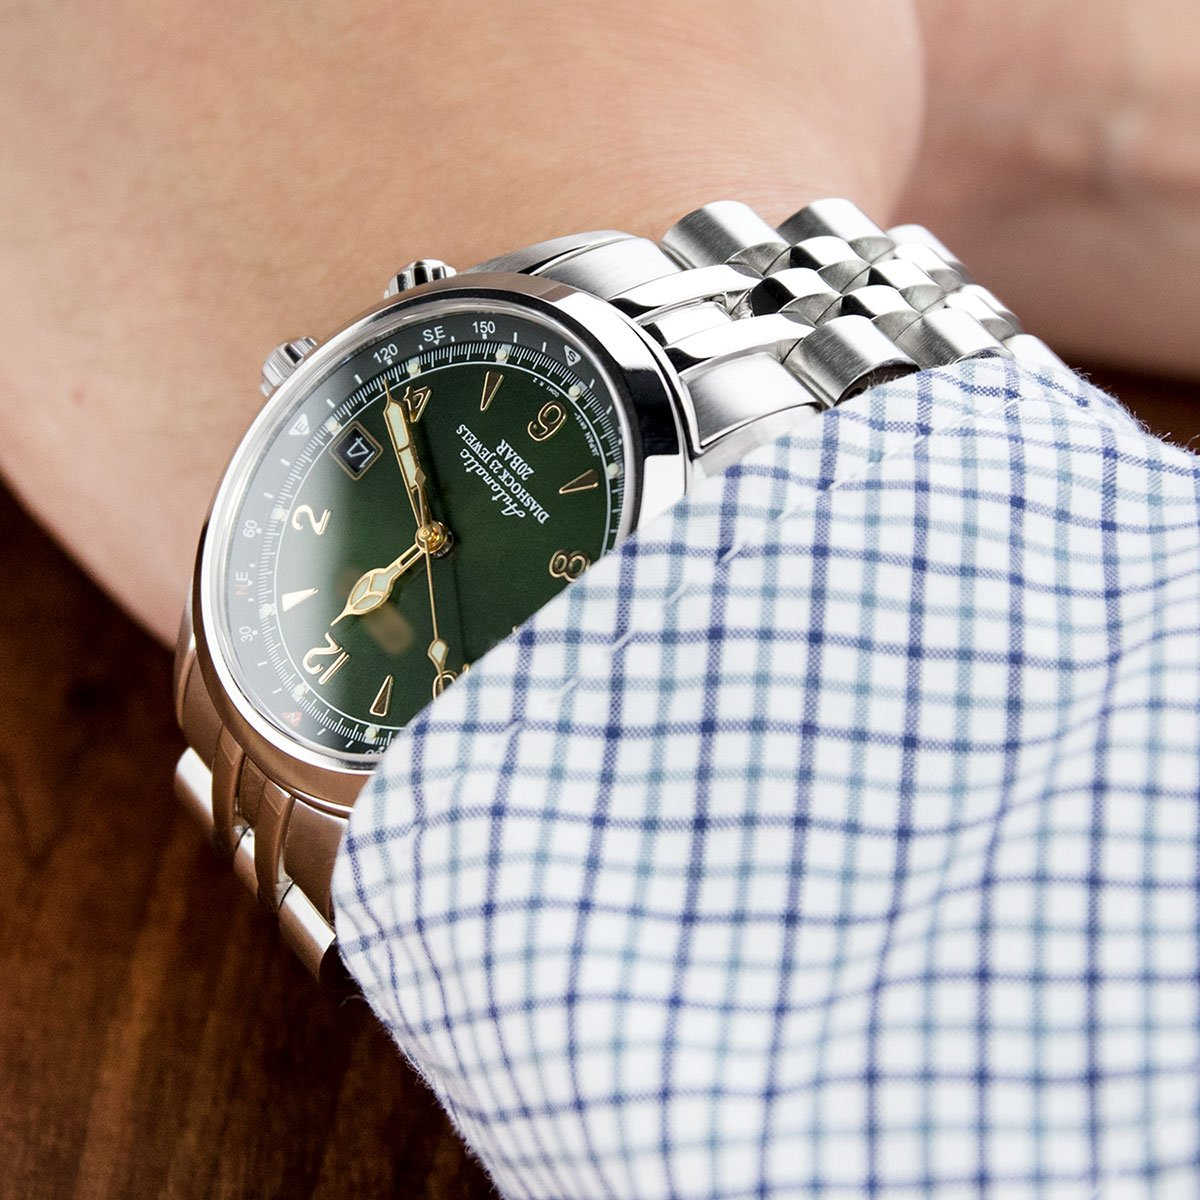 20mm Angus Jubilee 316L SS Watch Bracelet for Seiko Alpinist SARB017, V-Clasp by Seiko Replacement by MiLTAT (Image #2)